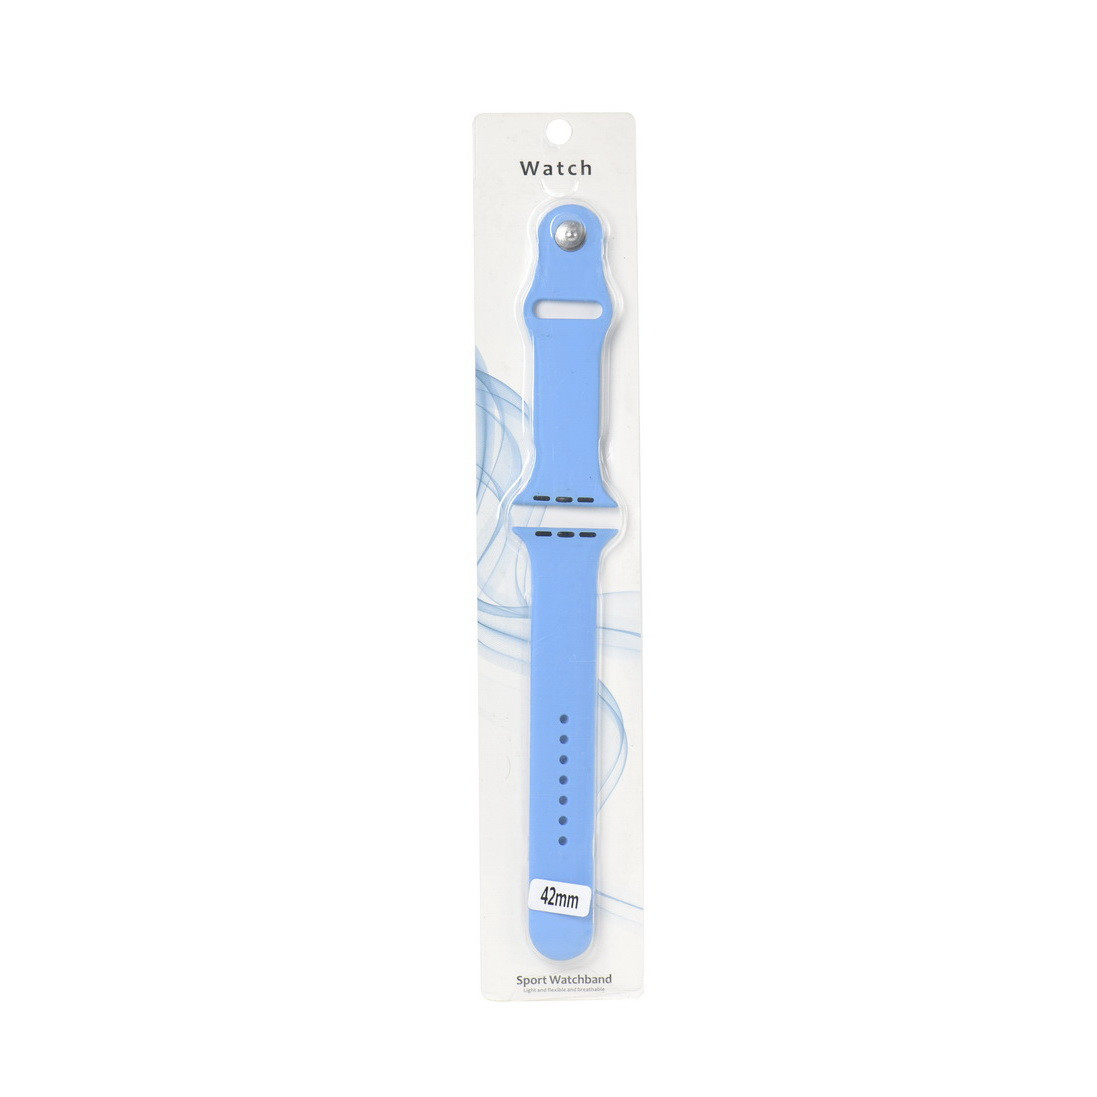 Ремешок For Apple Watch 42mm Sport Watchband Silicone Light Blue